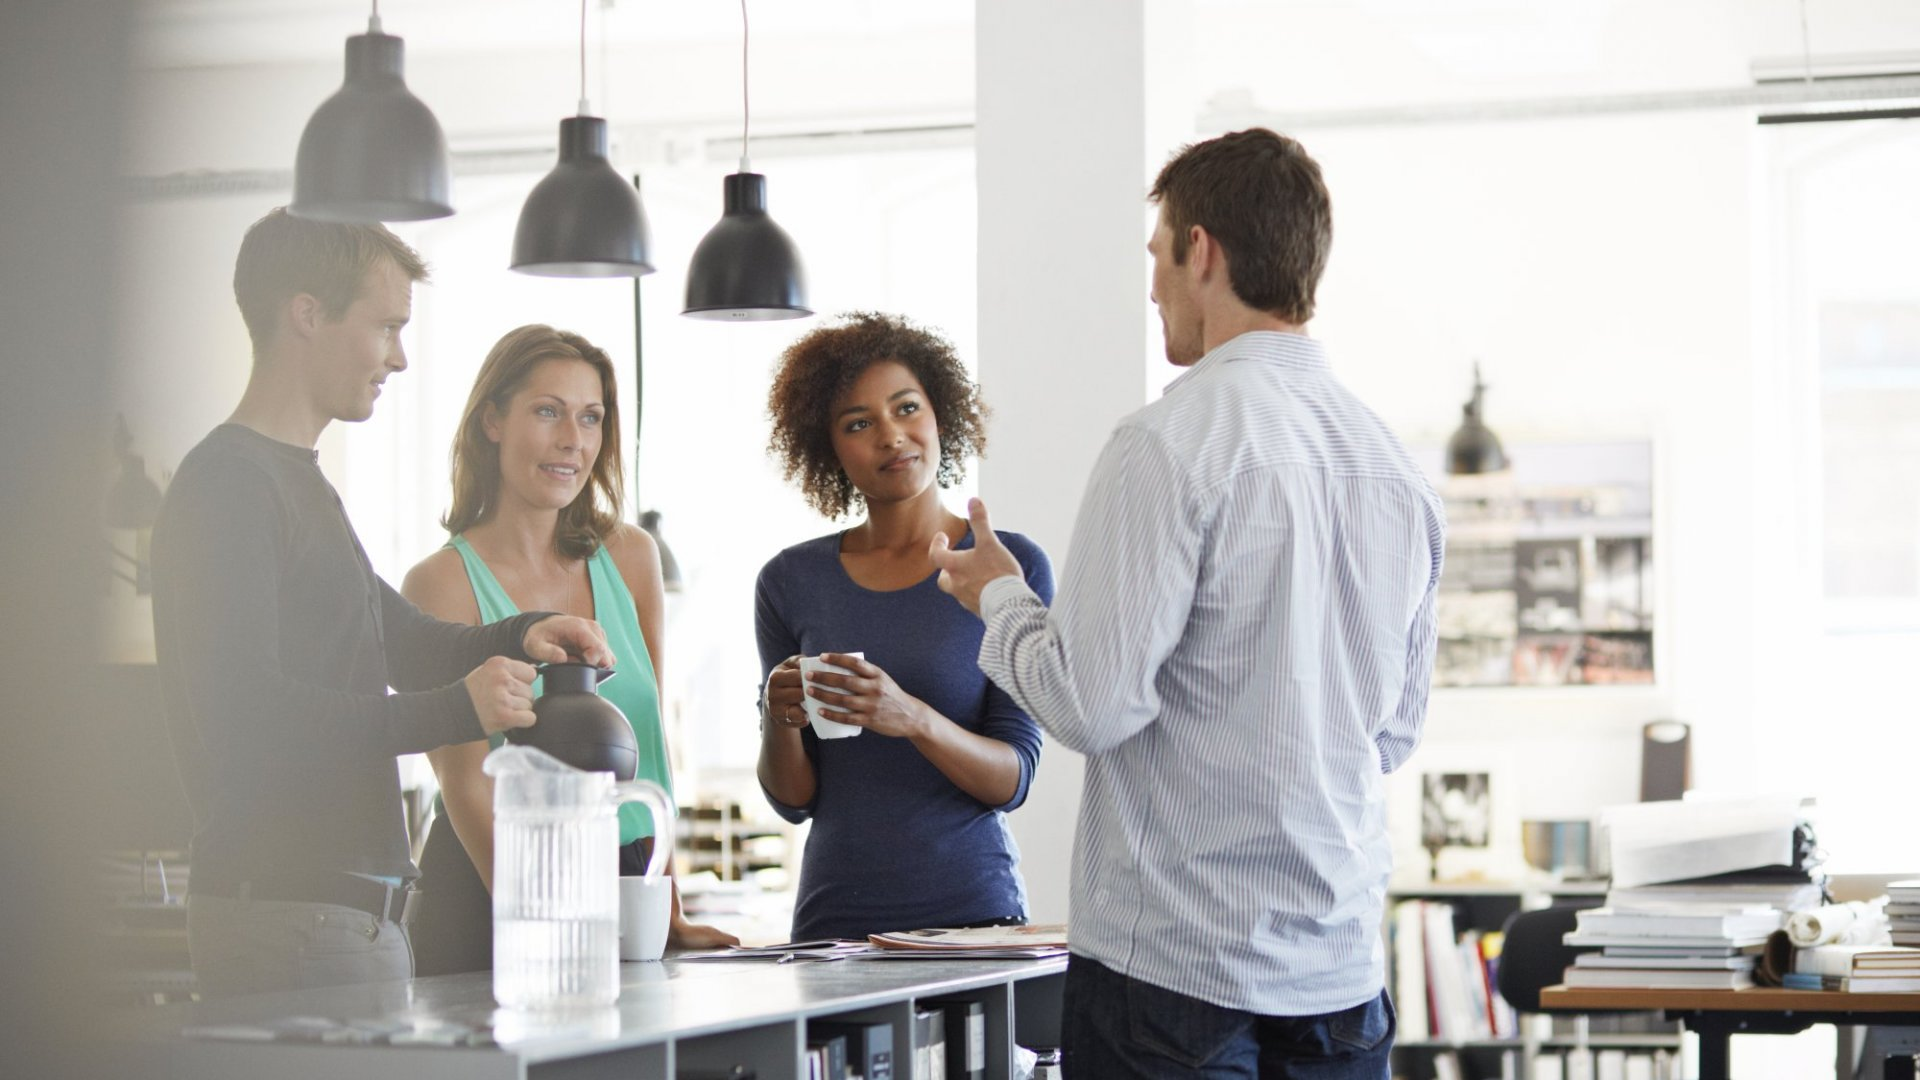 5 Incredibly Simple Habits of Leaders Who Know How to Empower Their People